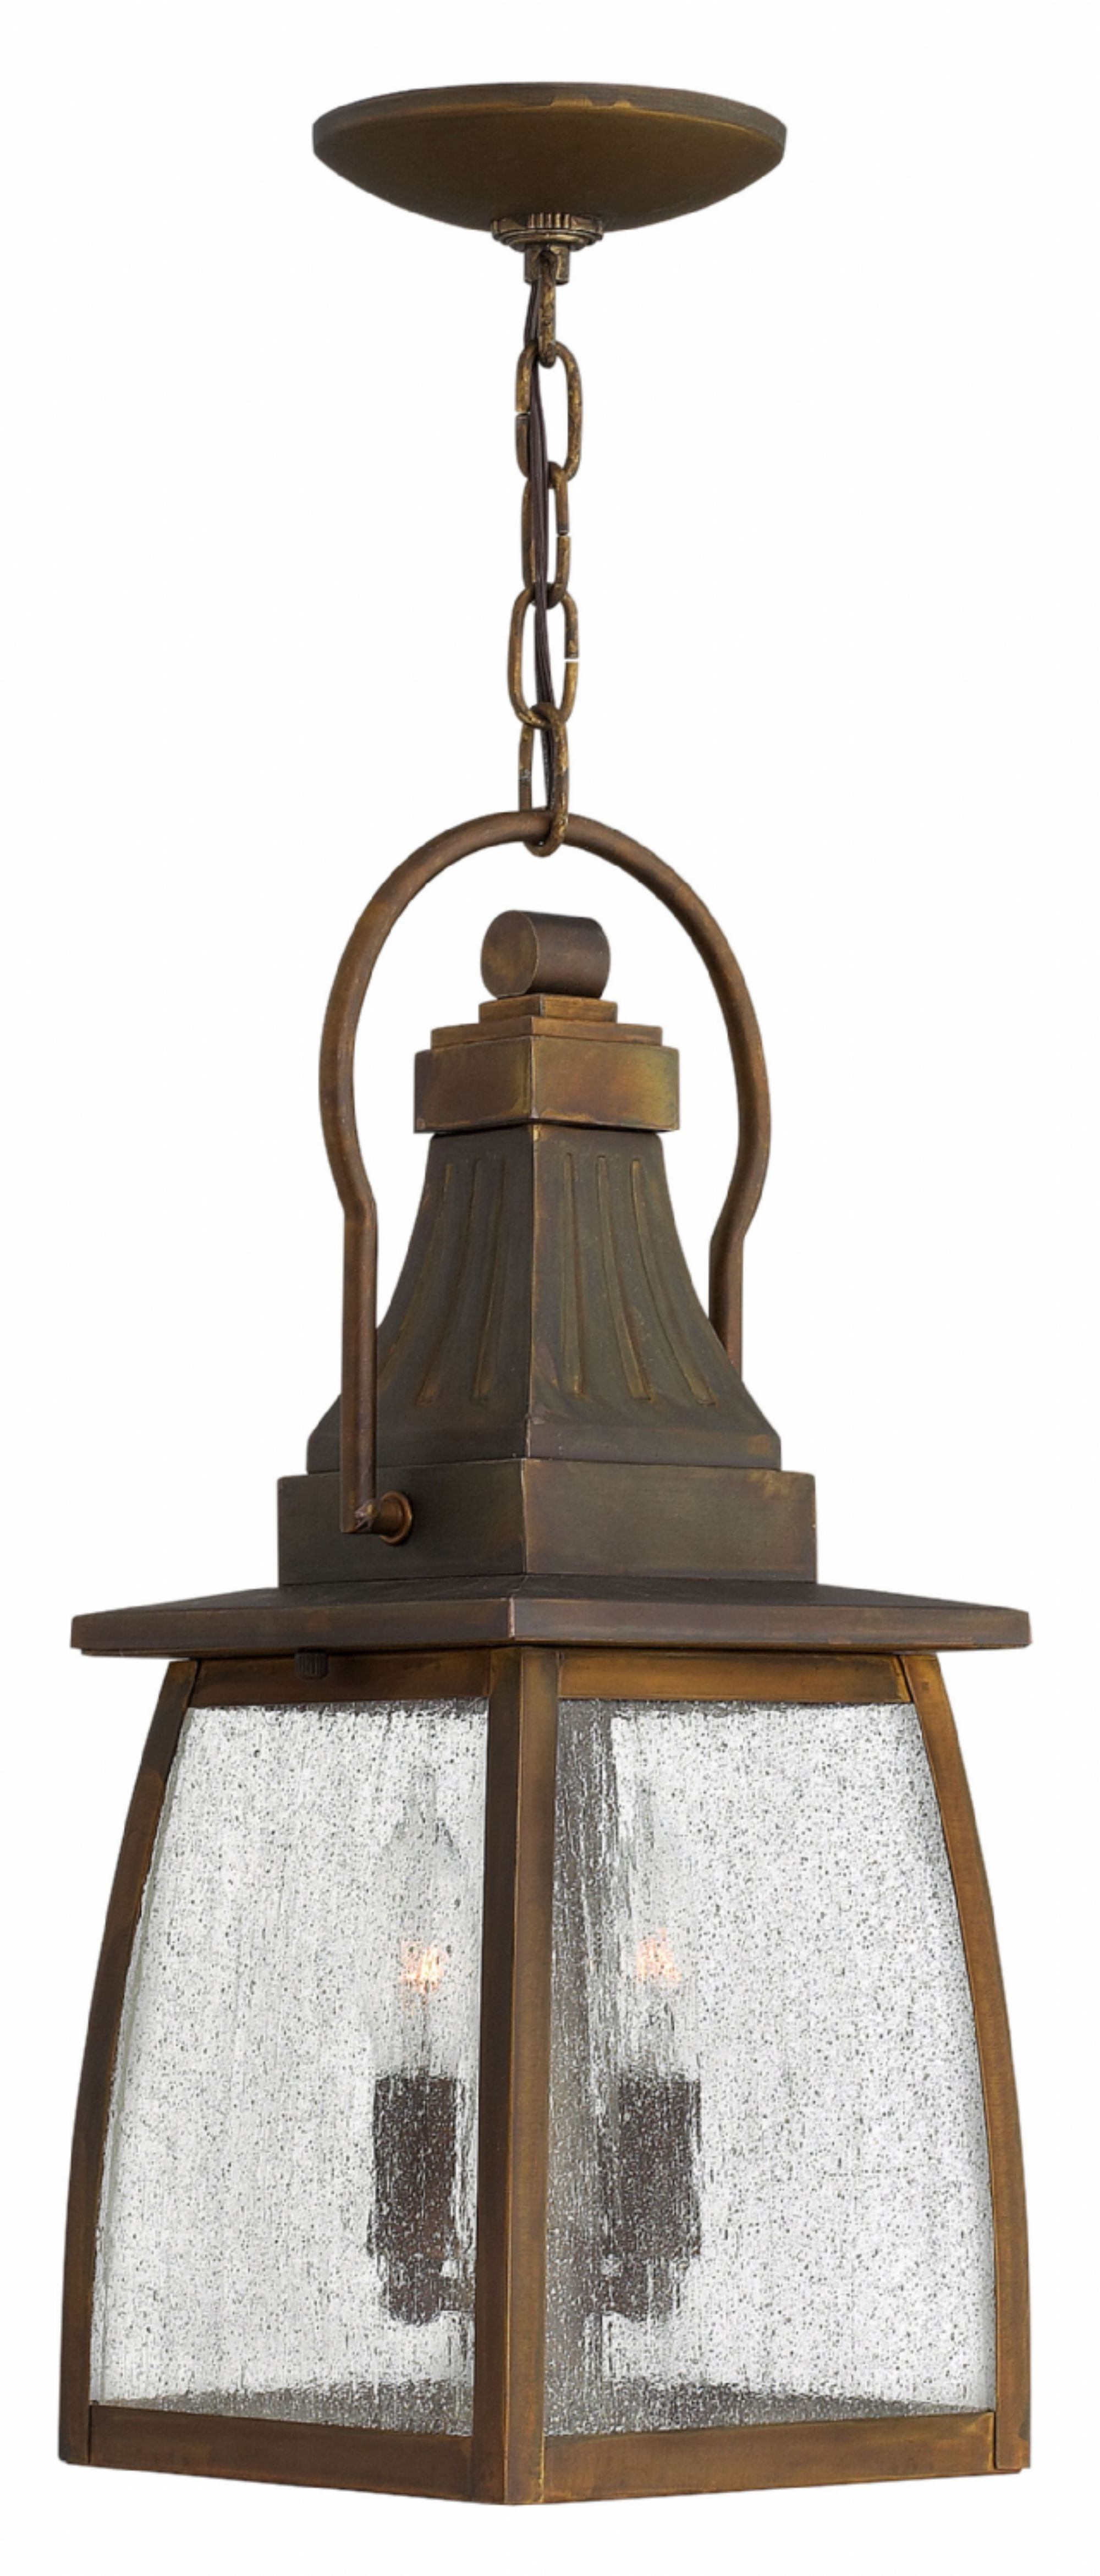 Widely Used Sienna Montauk > Exterior Ceiling Mount Pertaining To Brass Porch Hinkley Lighting (View 3 of 20)